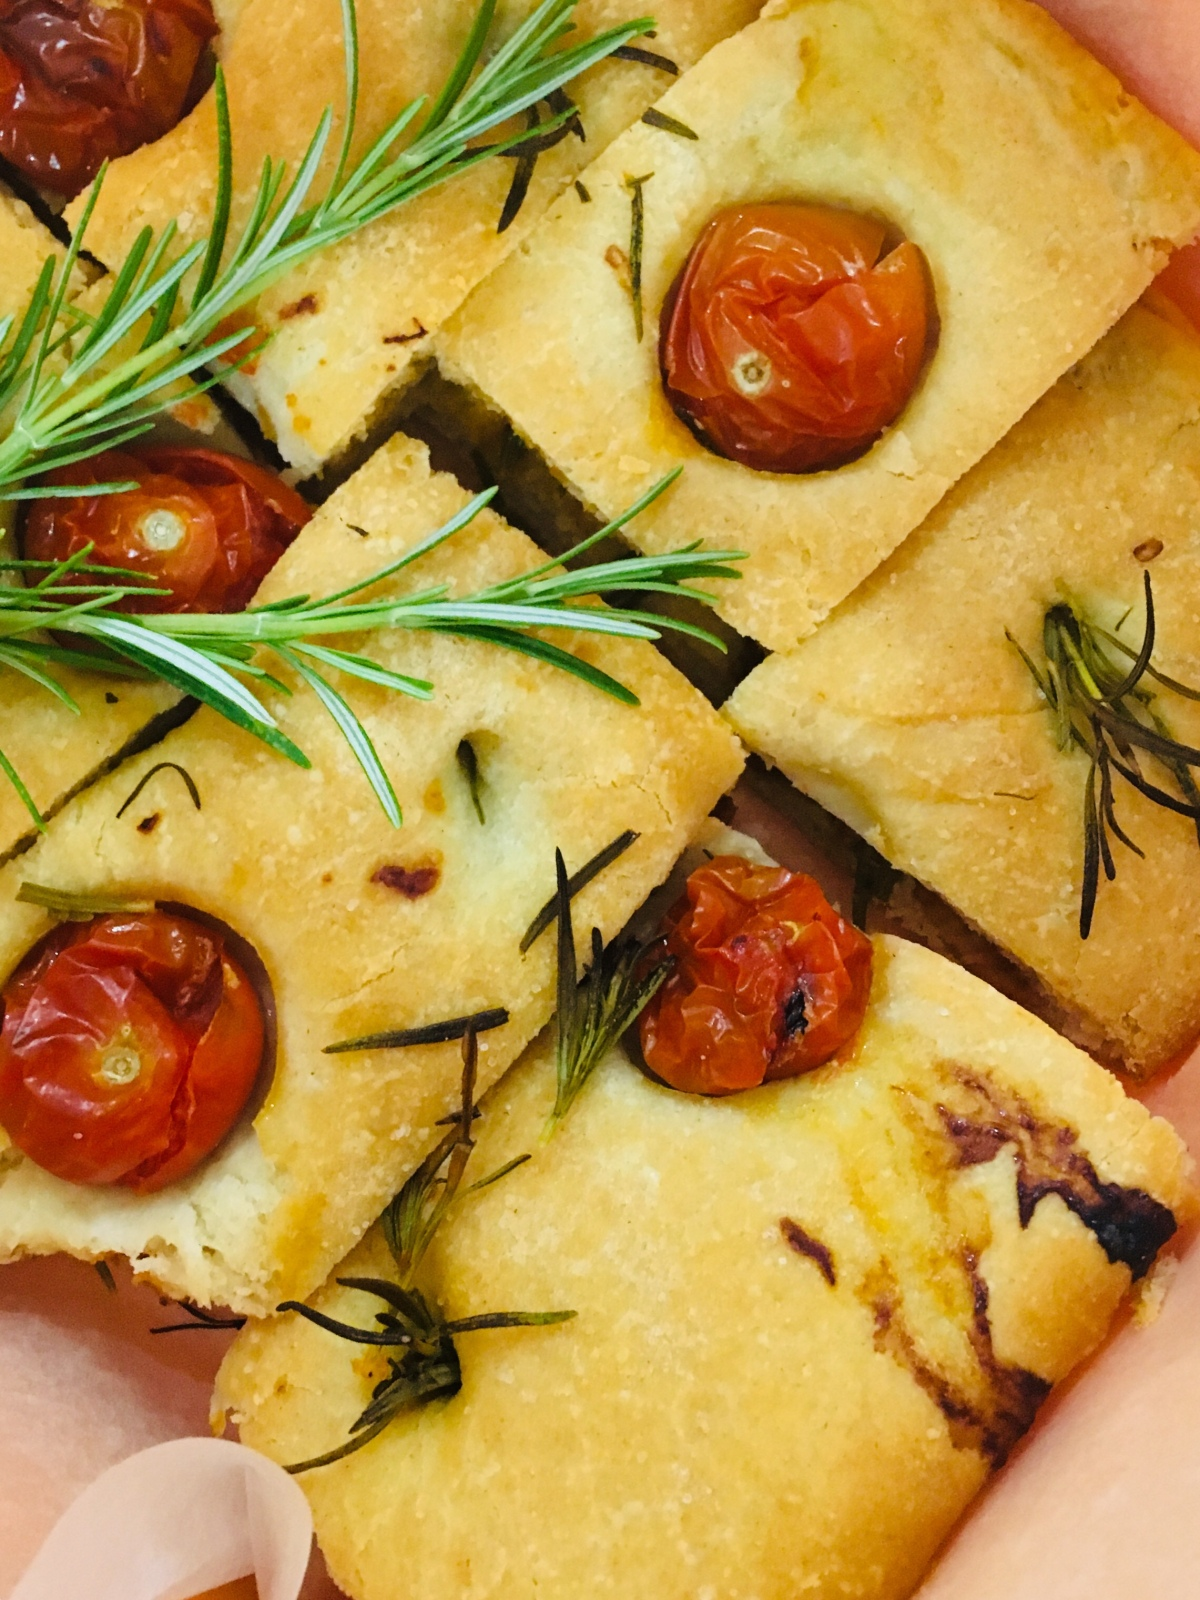 Focaccia Stuffed With Pesto & Tomatoes